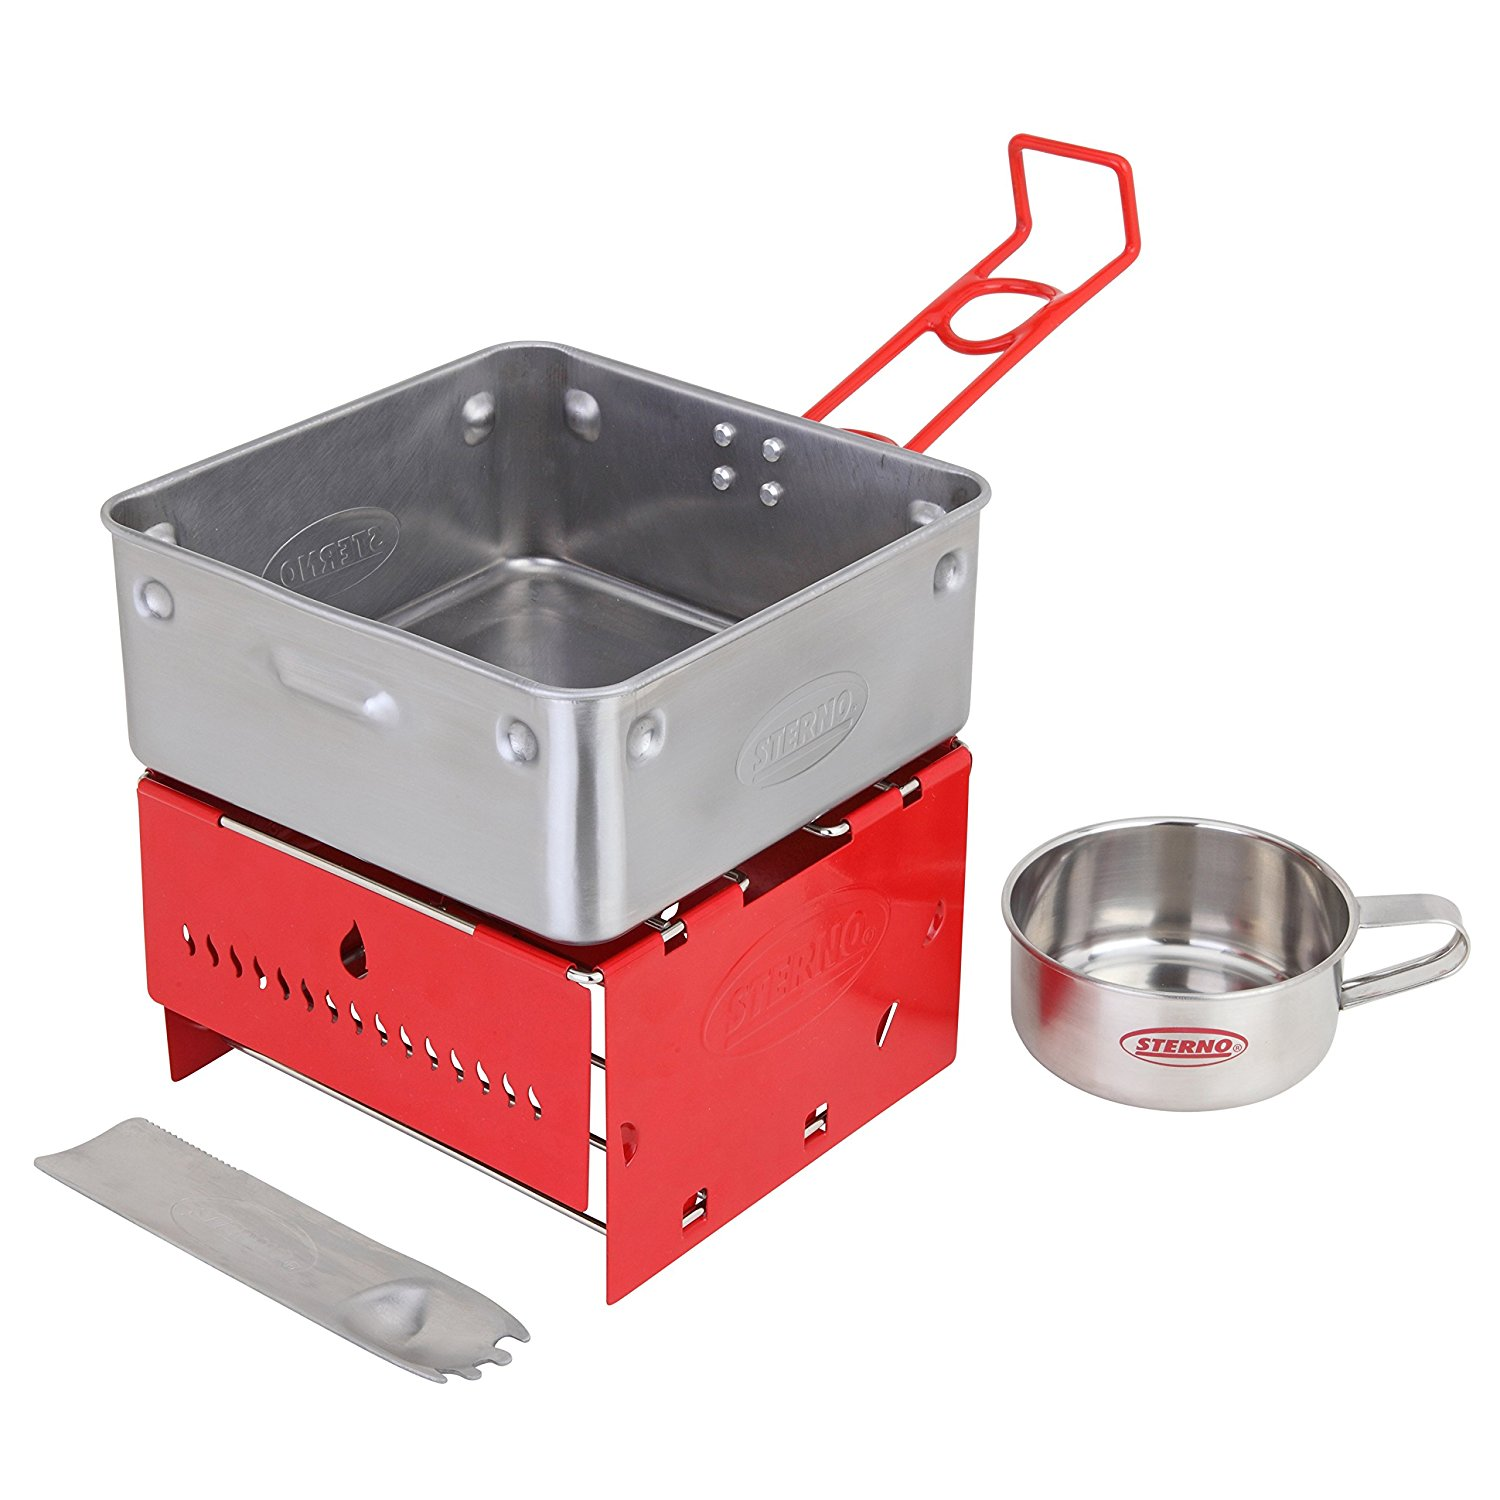 Sterno Camp Stove Kit with Frame and Wind-Shield Panels…